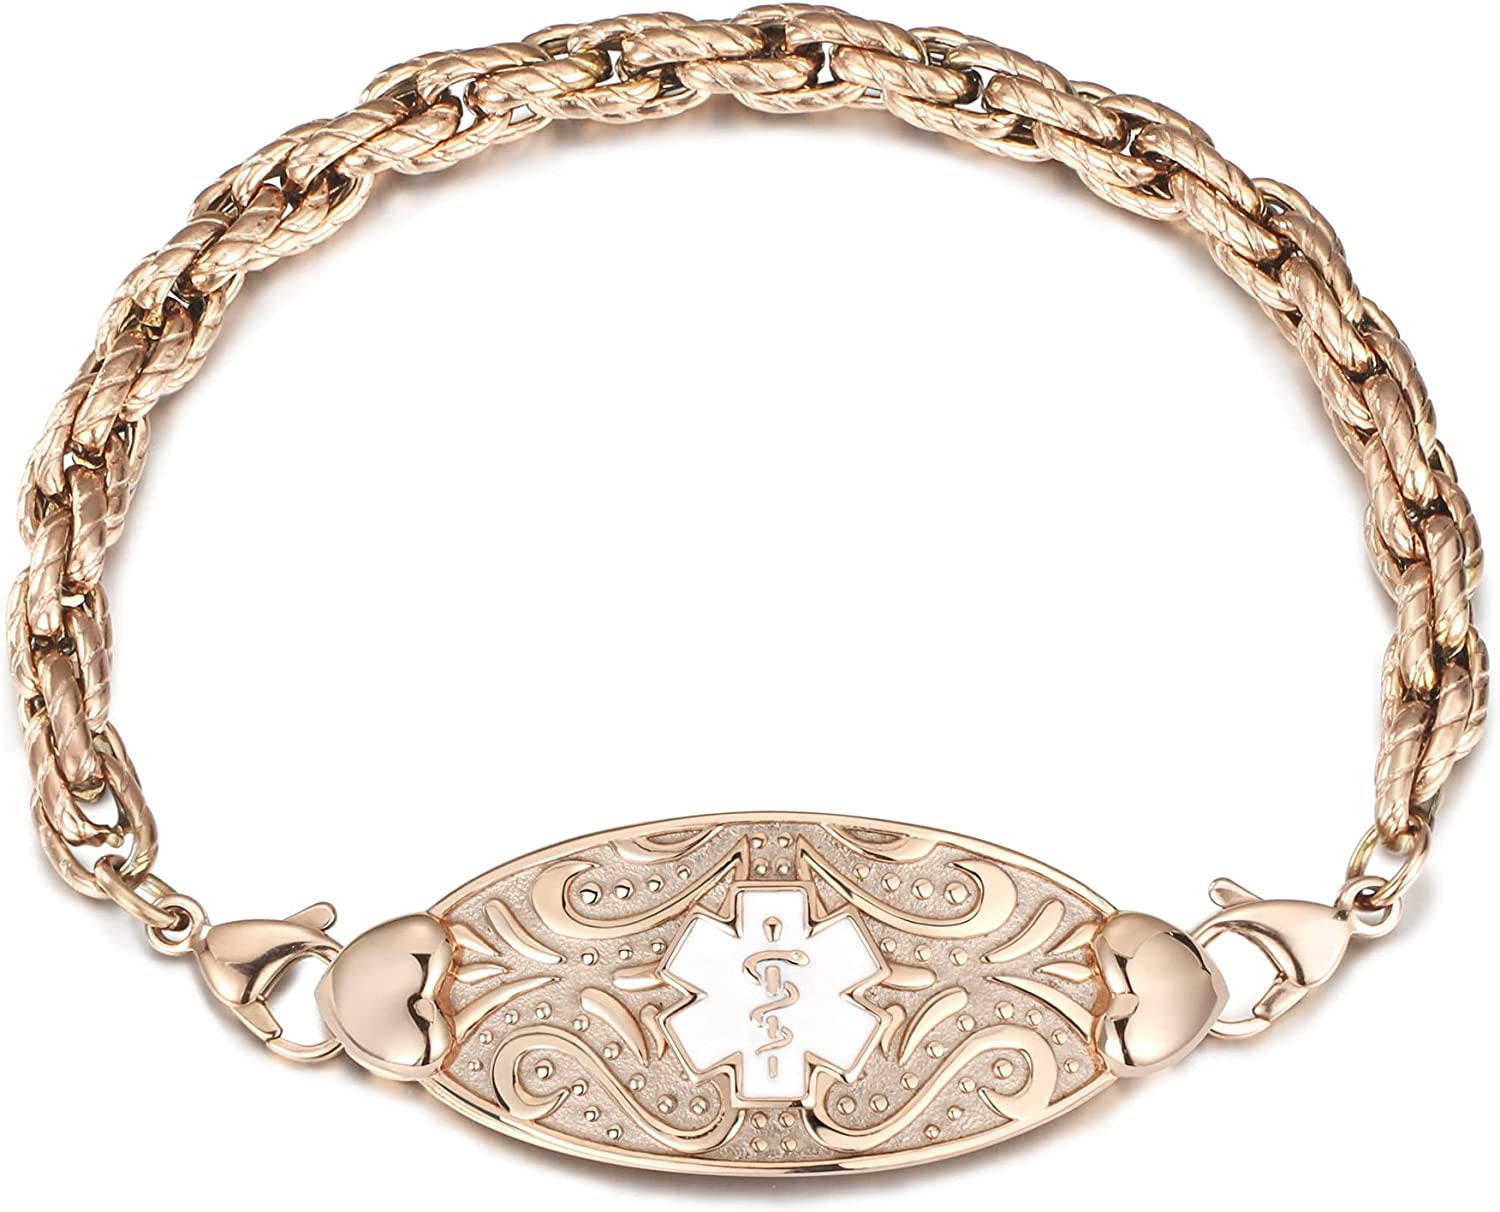 MunsteryAid Custom Medical Alert ID Women P Spring new work one after another Braided Bracelet for trend rank